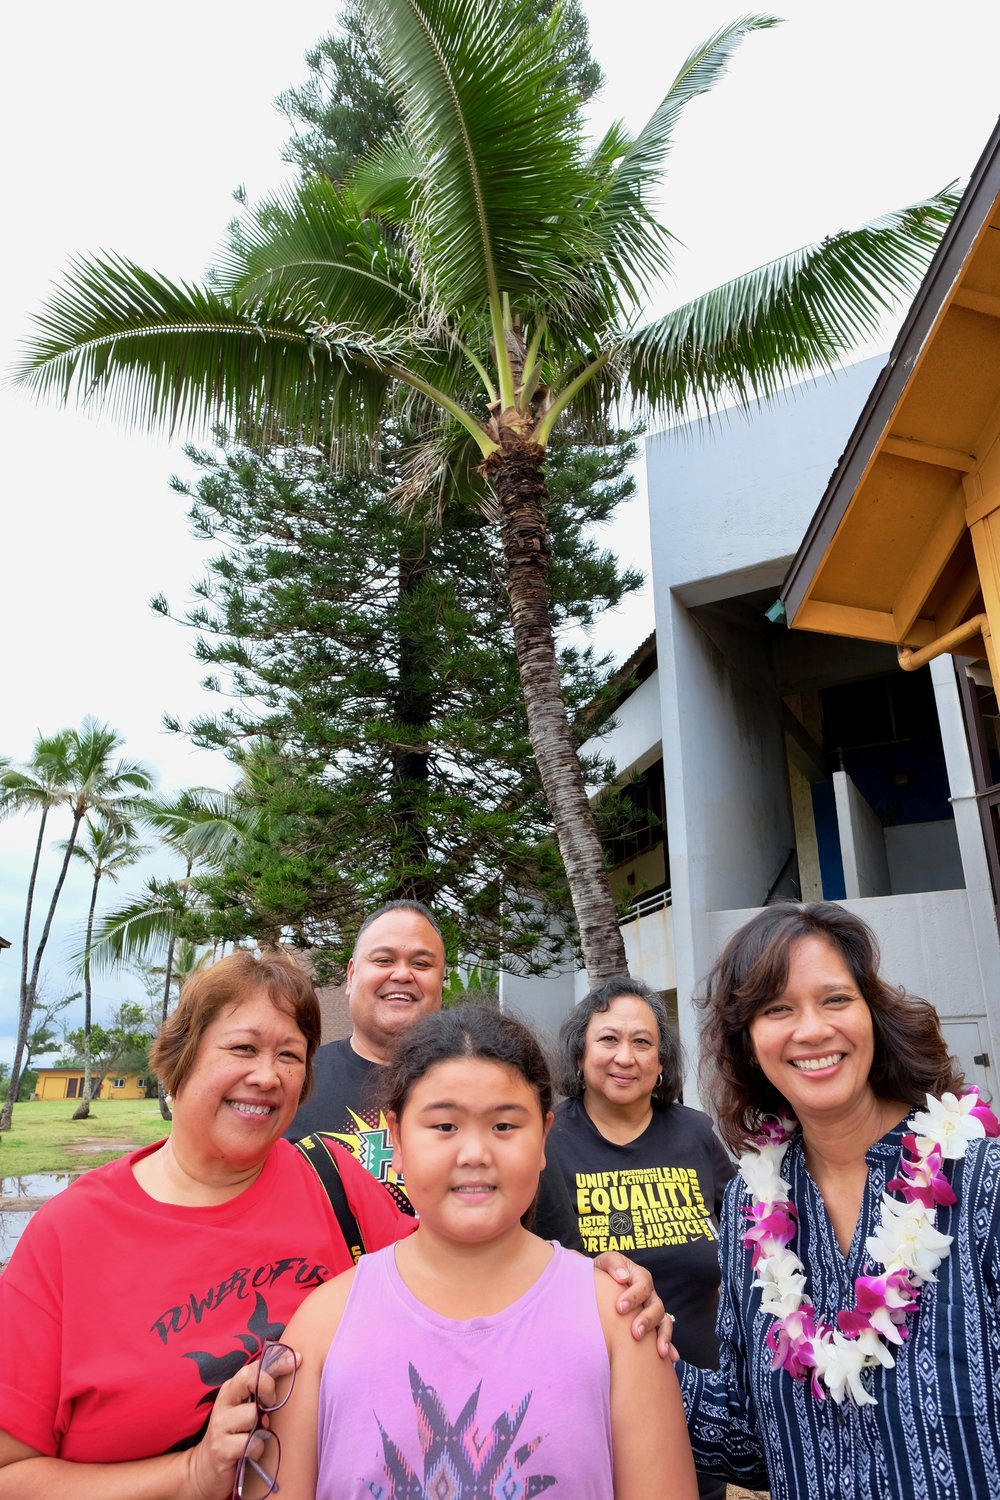 SG President Leon Florendo's daughter Leala, front, with SG Secretary Manang Milli, Leon Florendo, Manang Mia Luluquisen, and Dr. Patricia Espiritu Halagao with the coconut tree planted by SG 38 years ago.Photo by J. Austria.